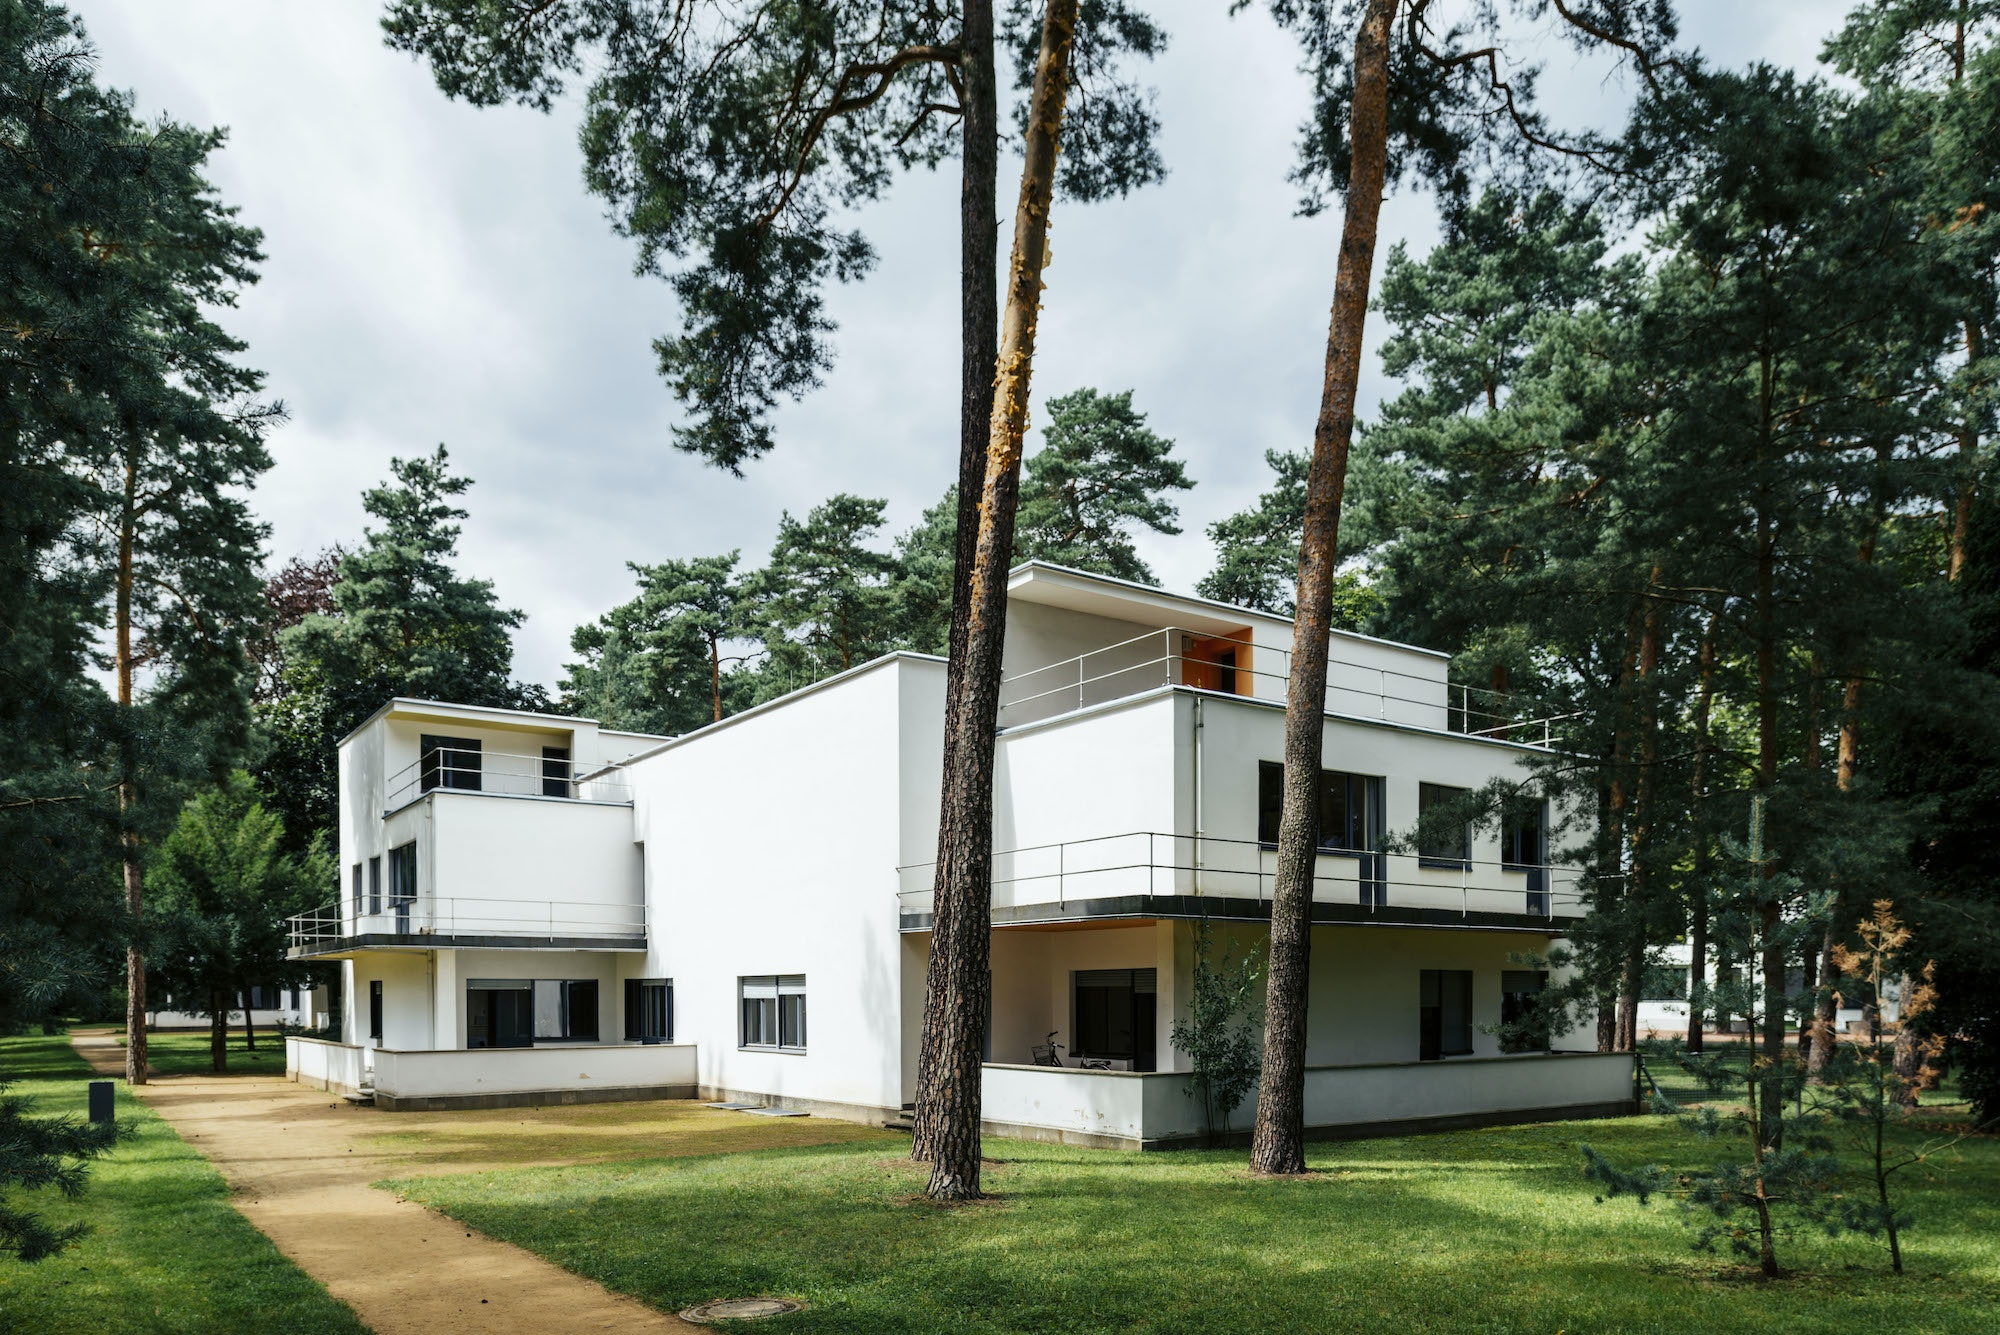 Guided tours of the Masters' Houses in Dessau will be offered in German and English.